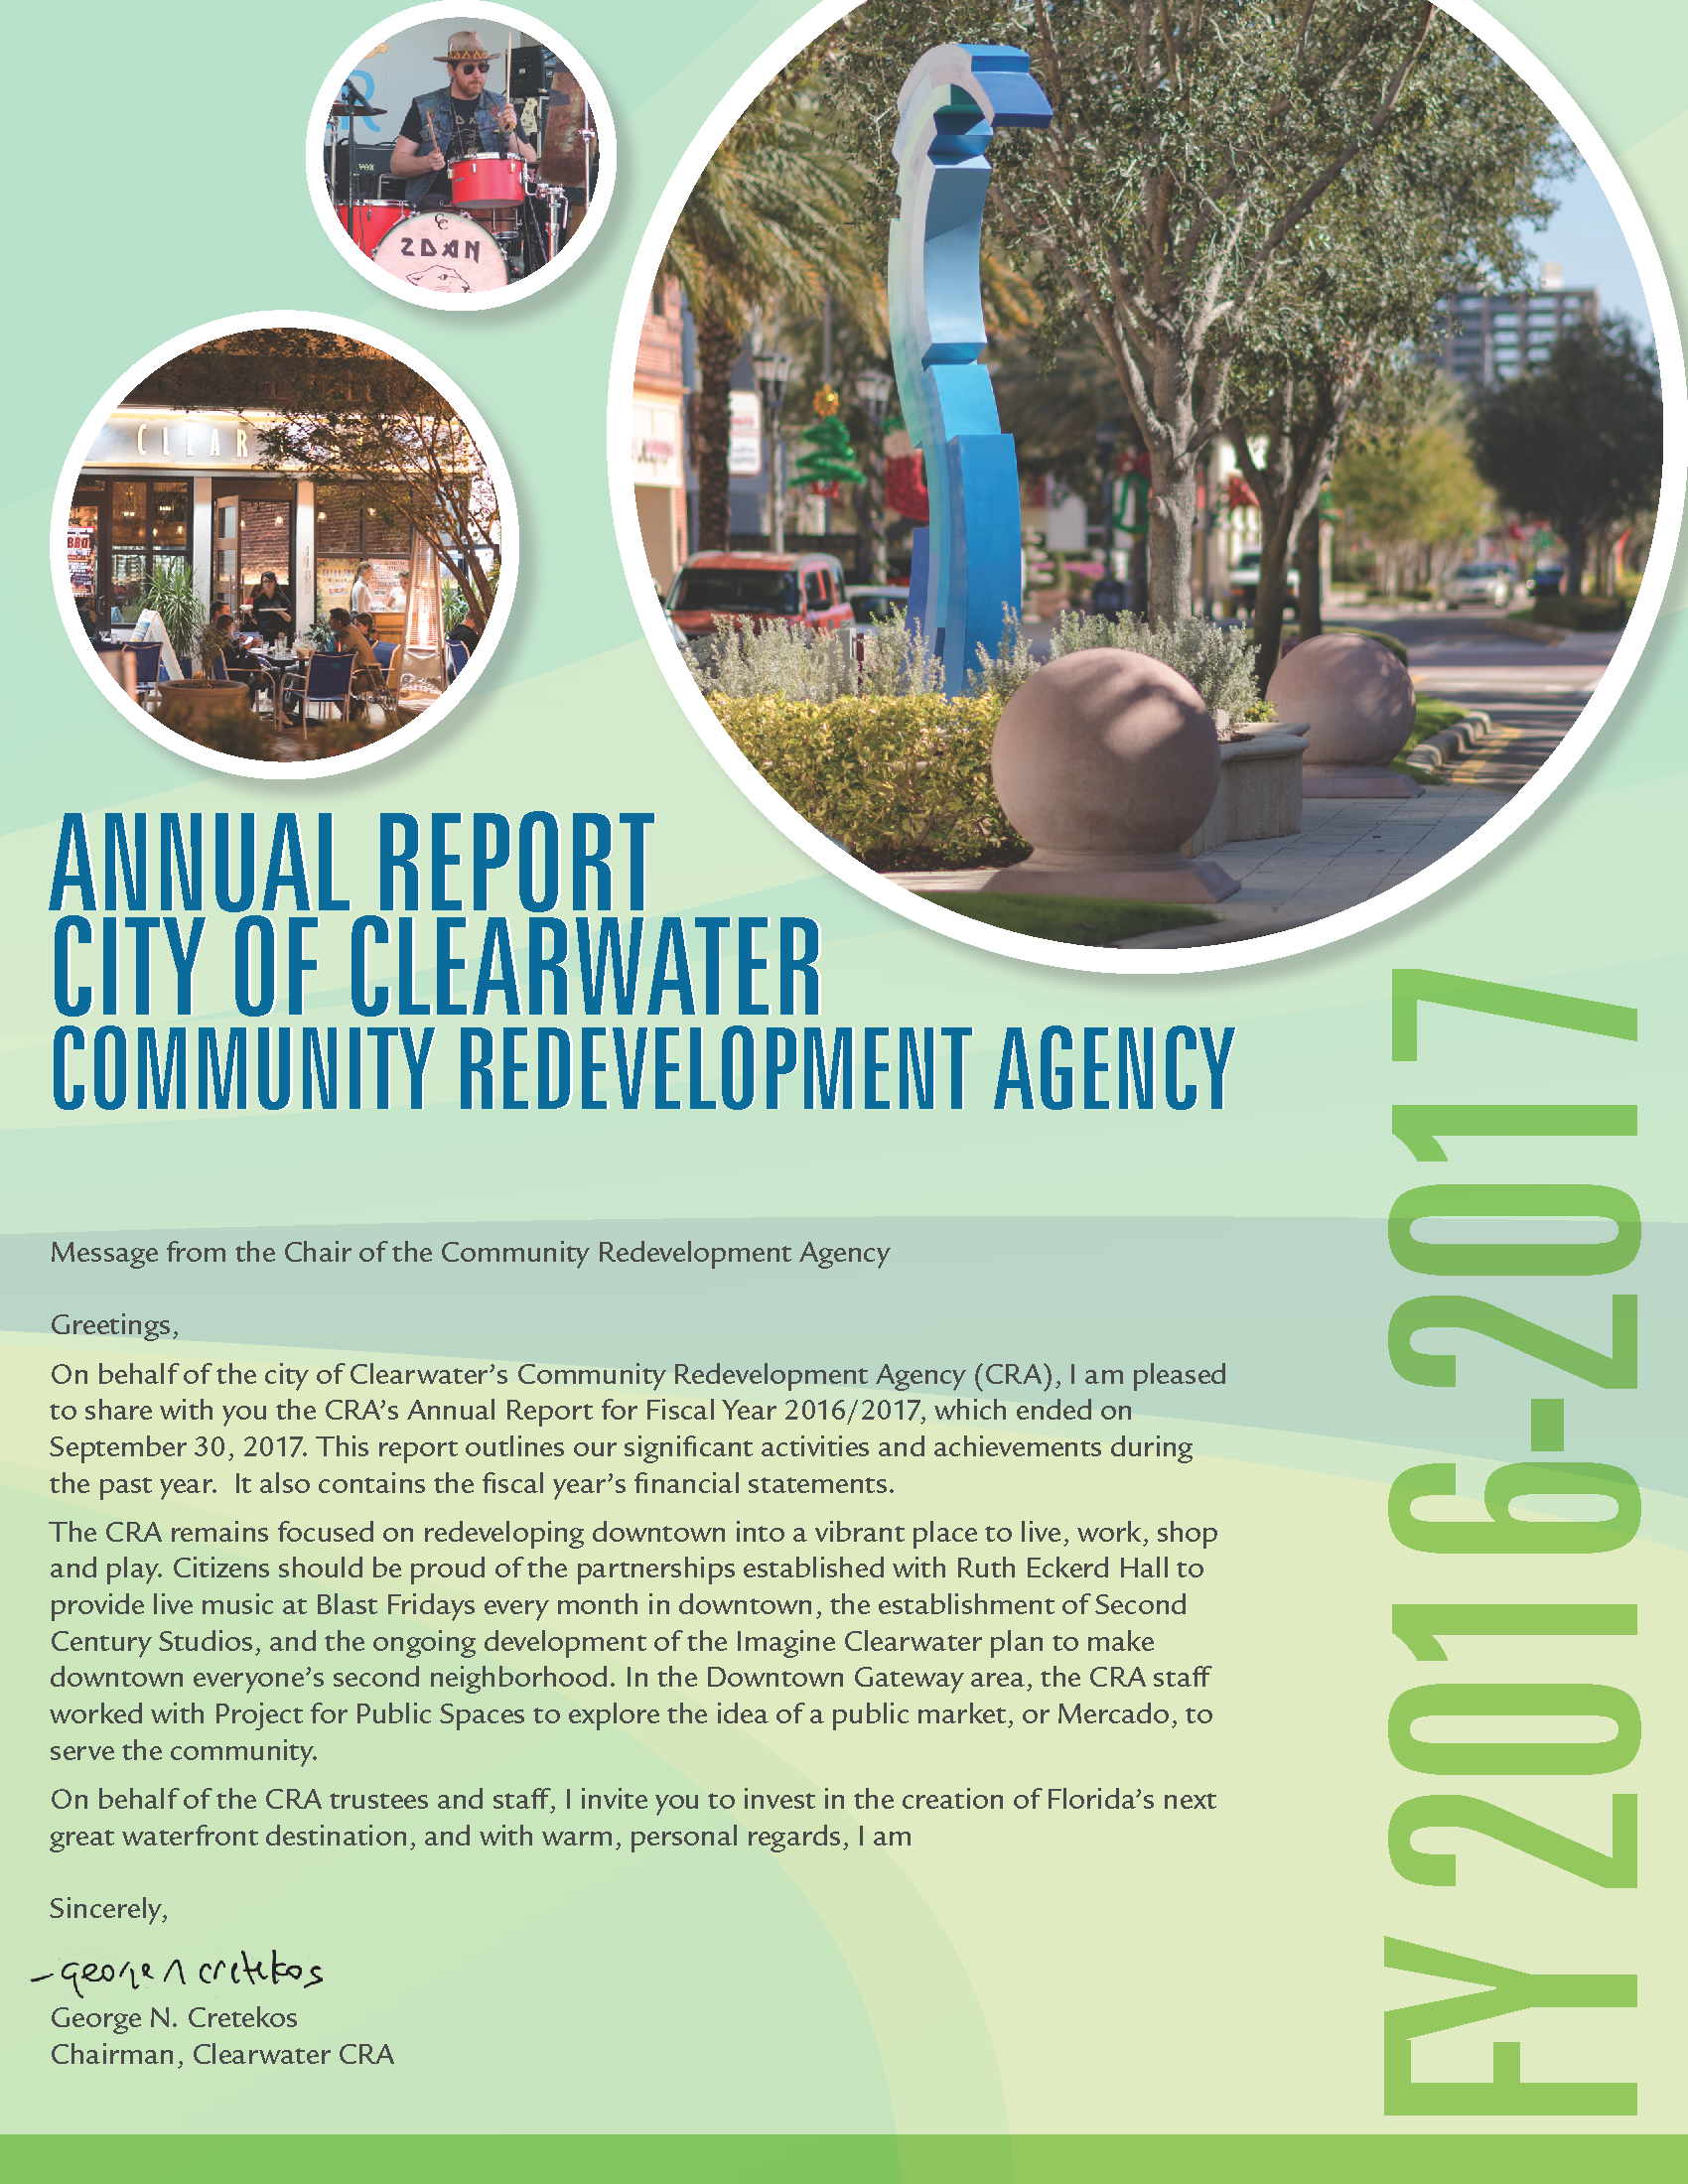 Community Redevelopment Agency Cra City Of Clearwater Fl